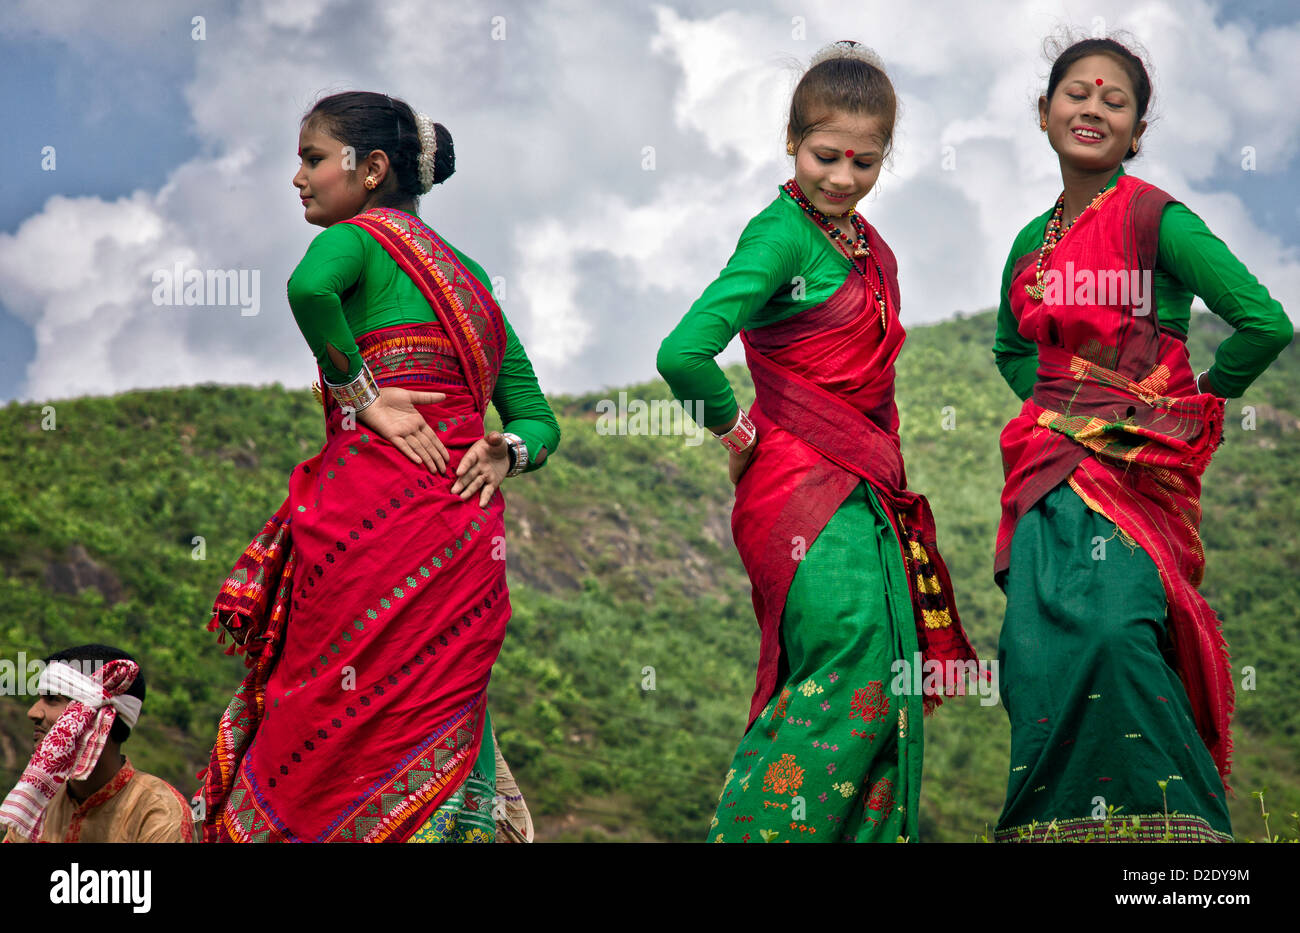 Assamese Drama Stock Photos & Assamese Drama Stock Images